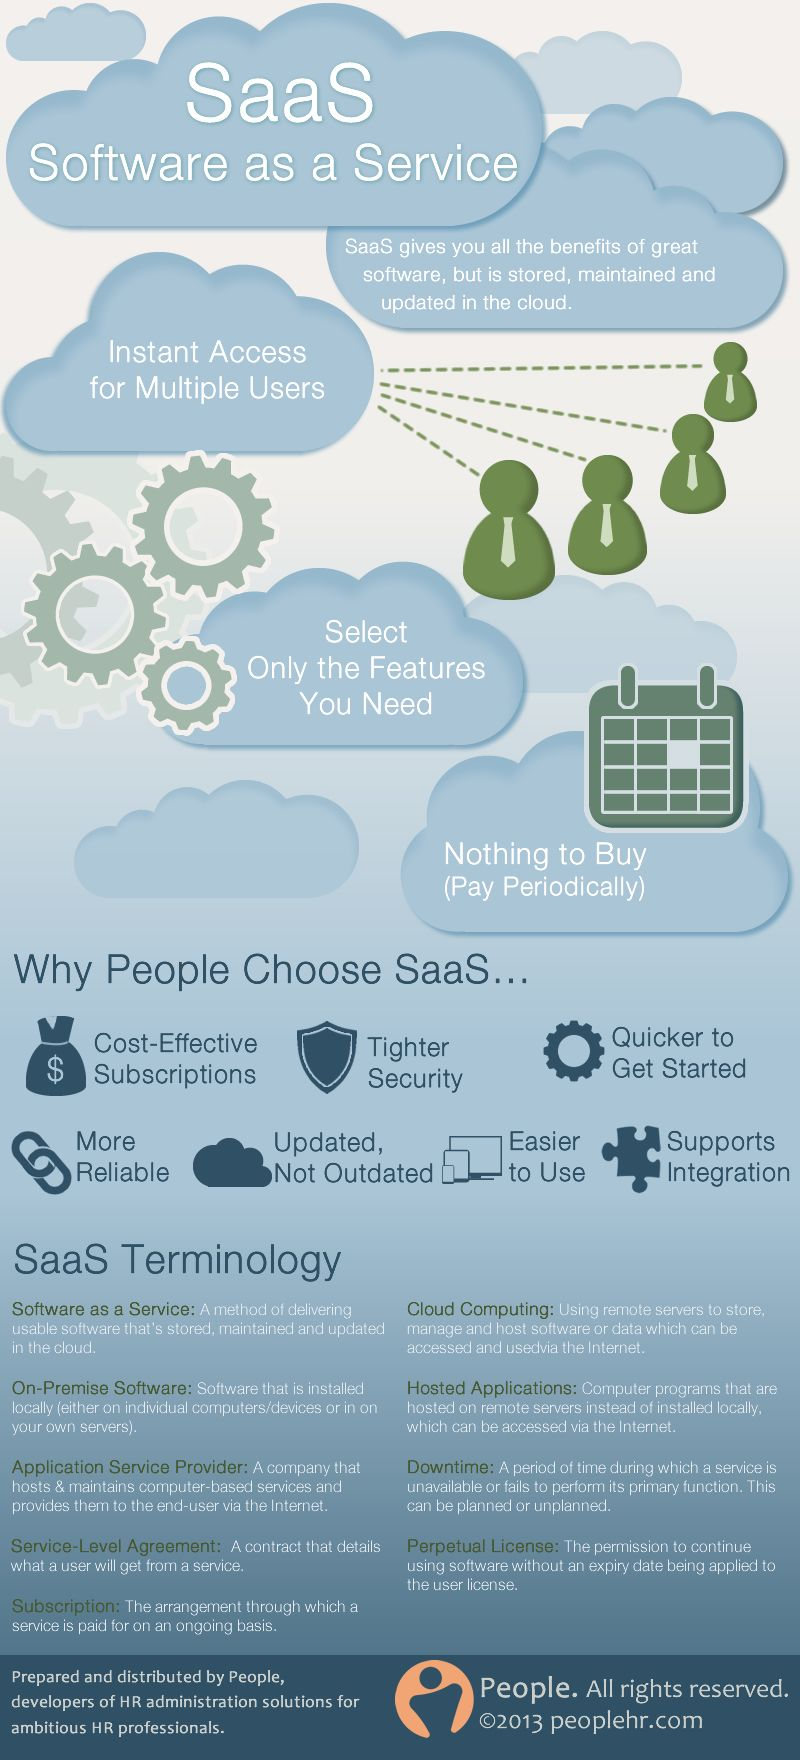 Software as a Service (SaaS) is an evergrowing industry